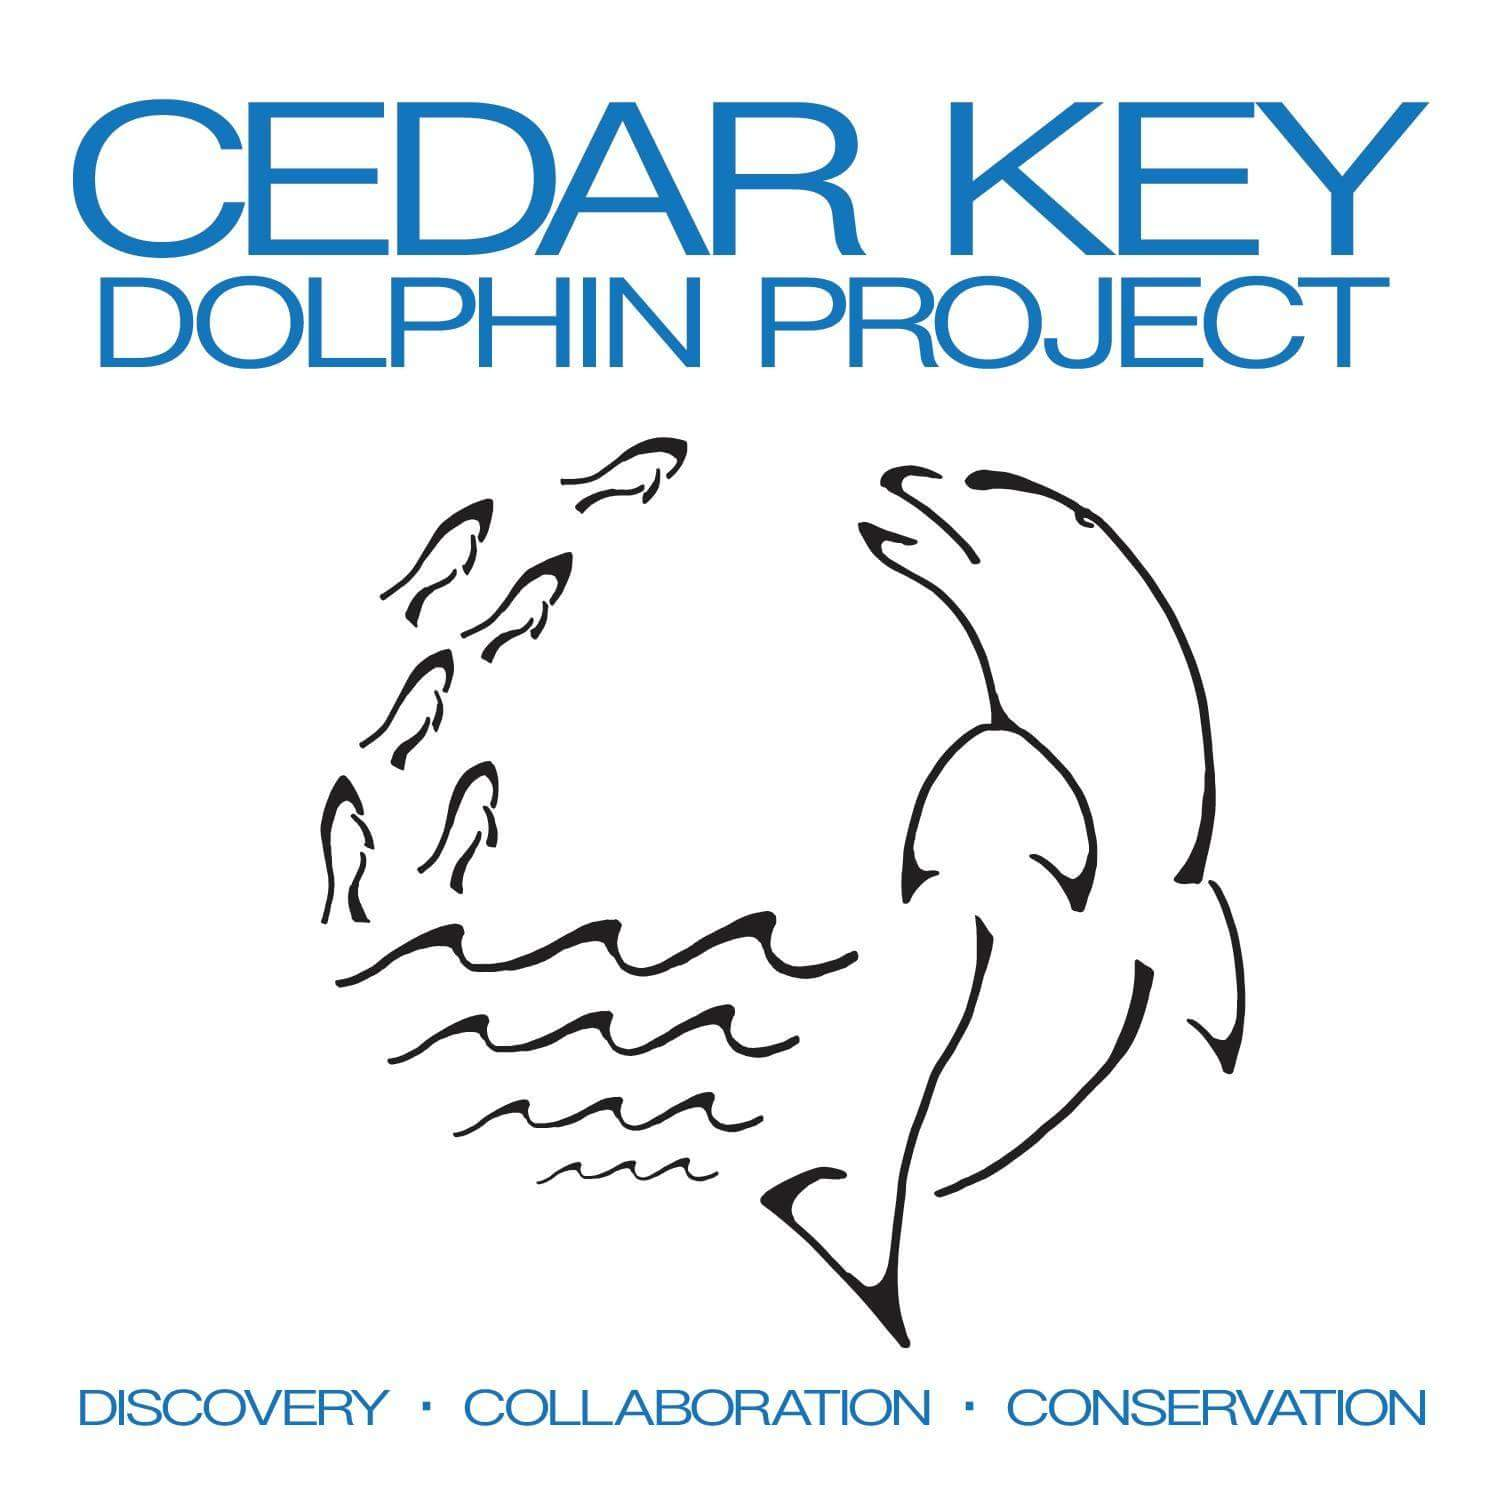 JOBS: Field assistant opportunity this summer in Cedar Key, Florida